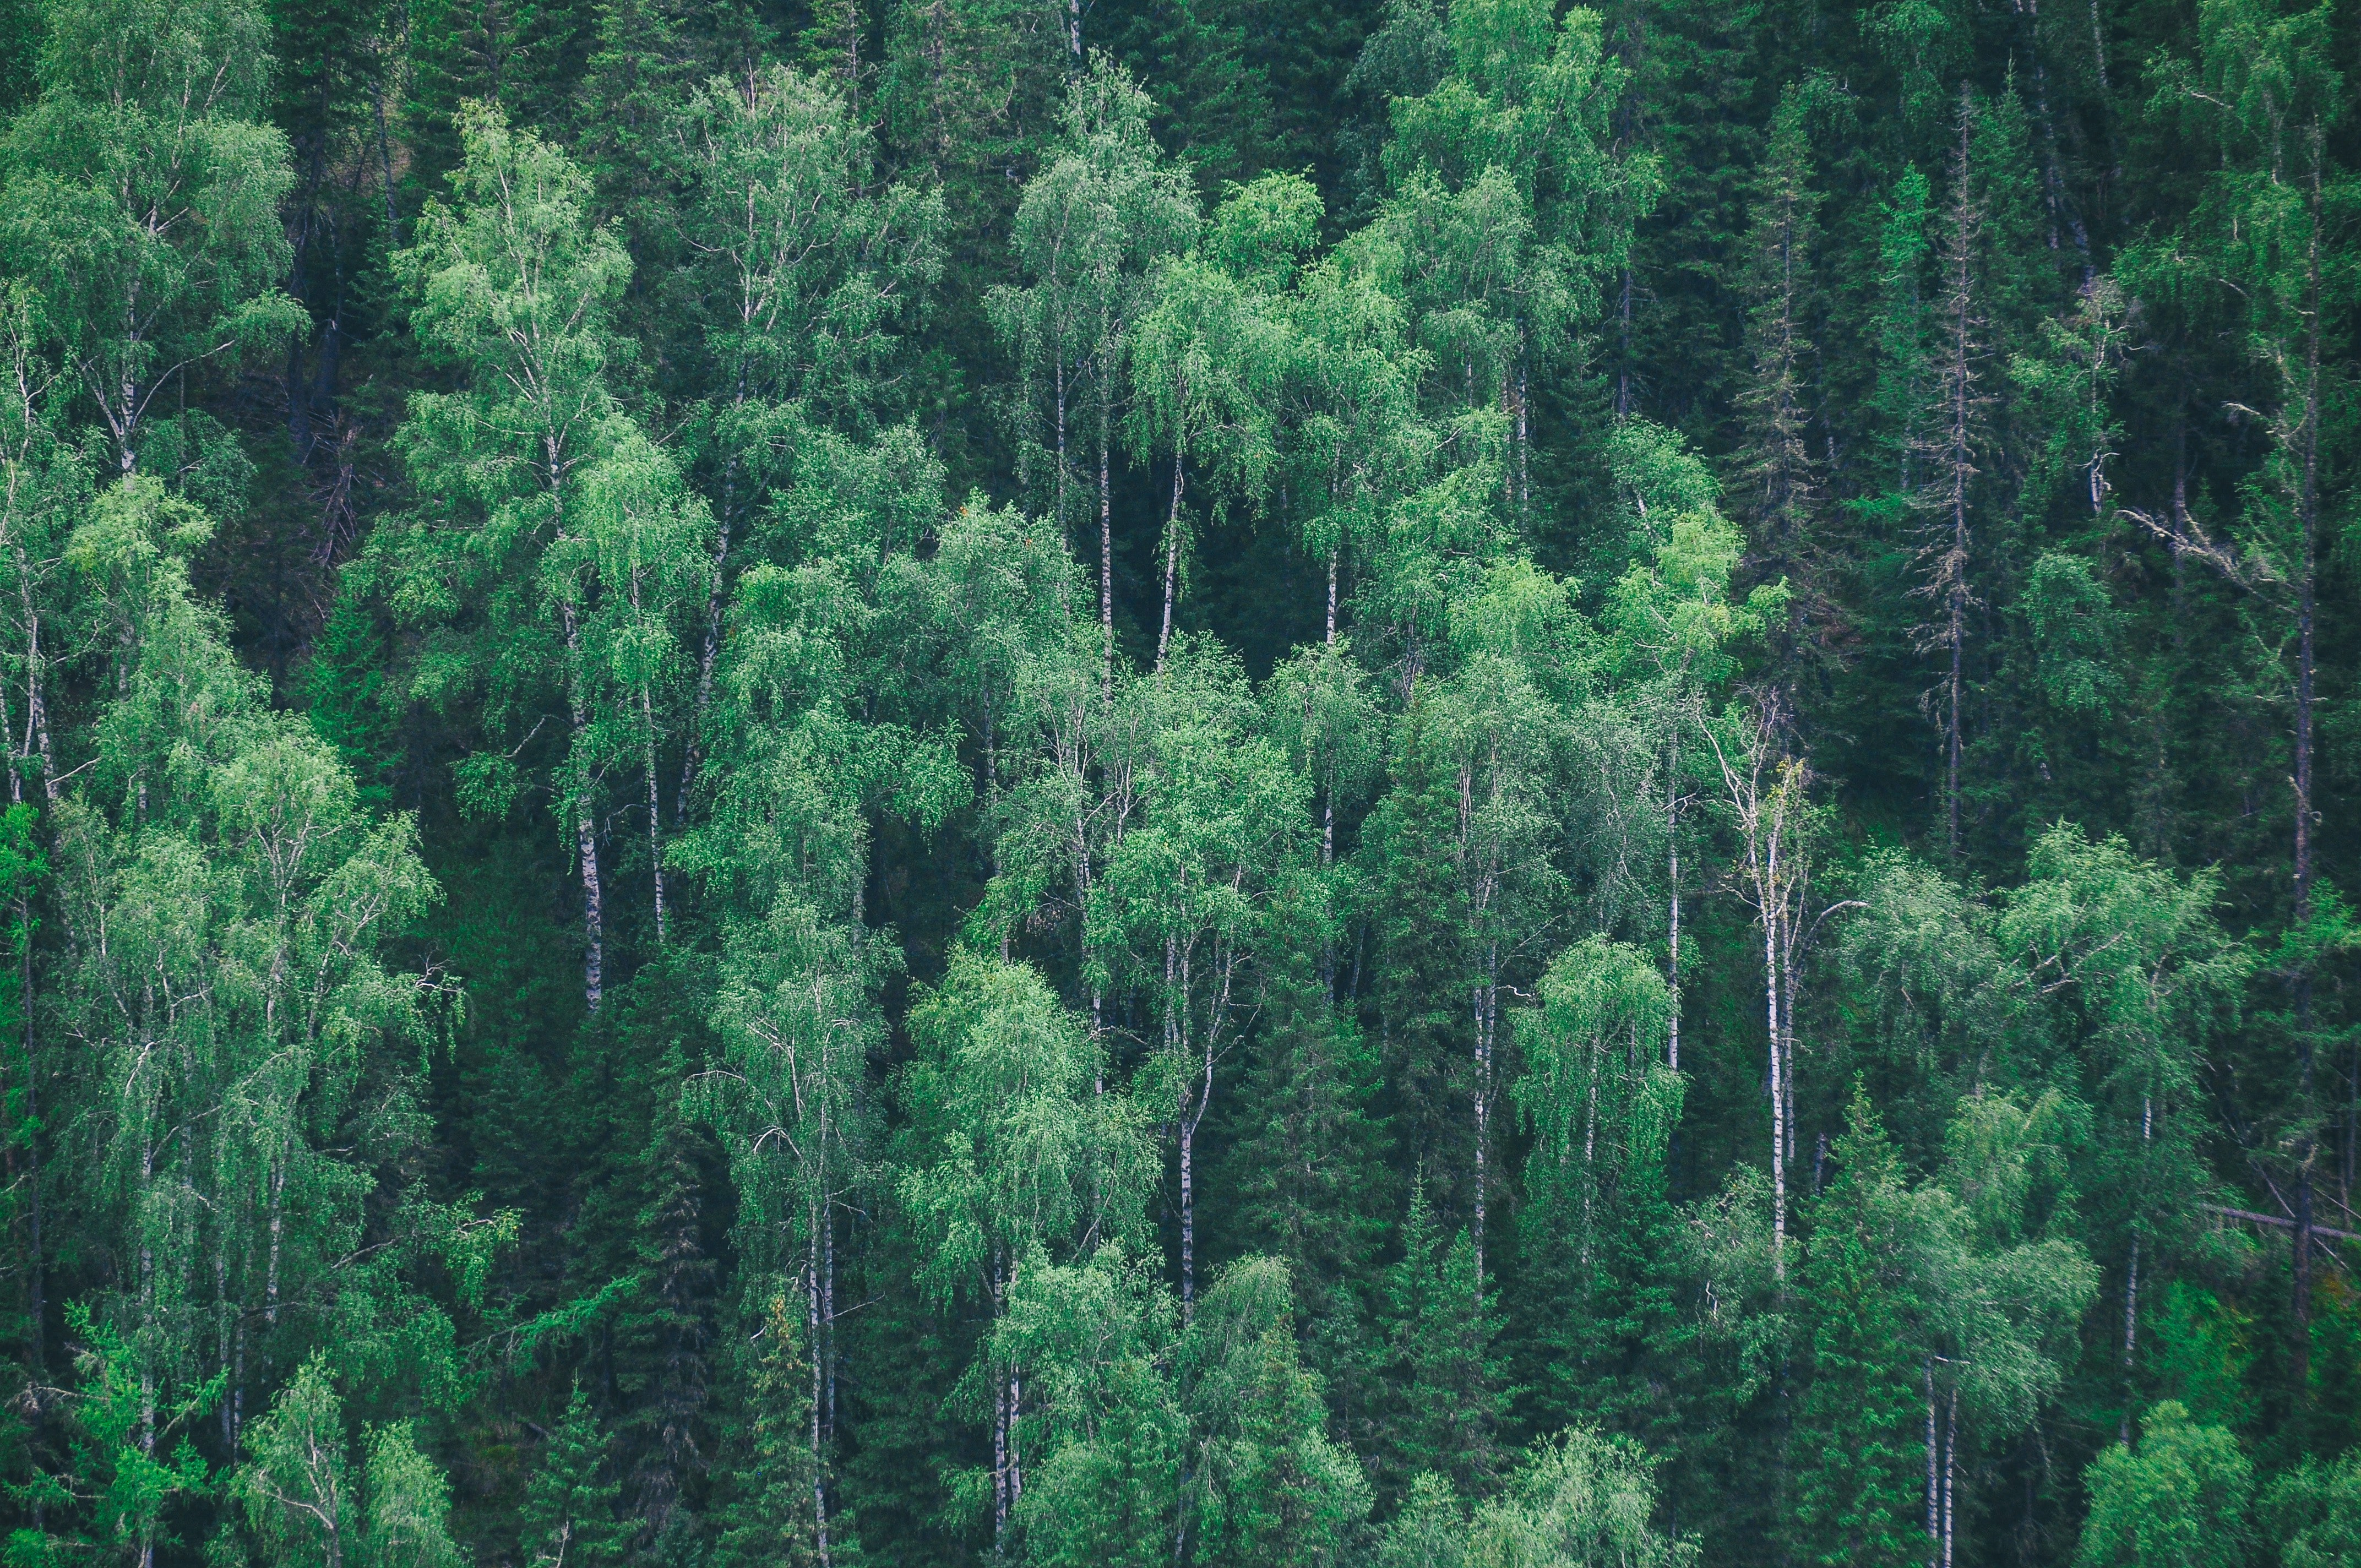 A high shot of tall trees growing on a slope